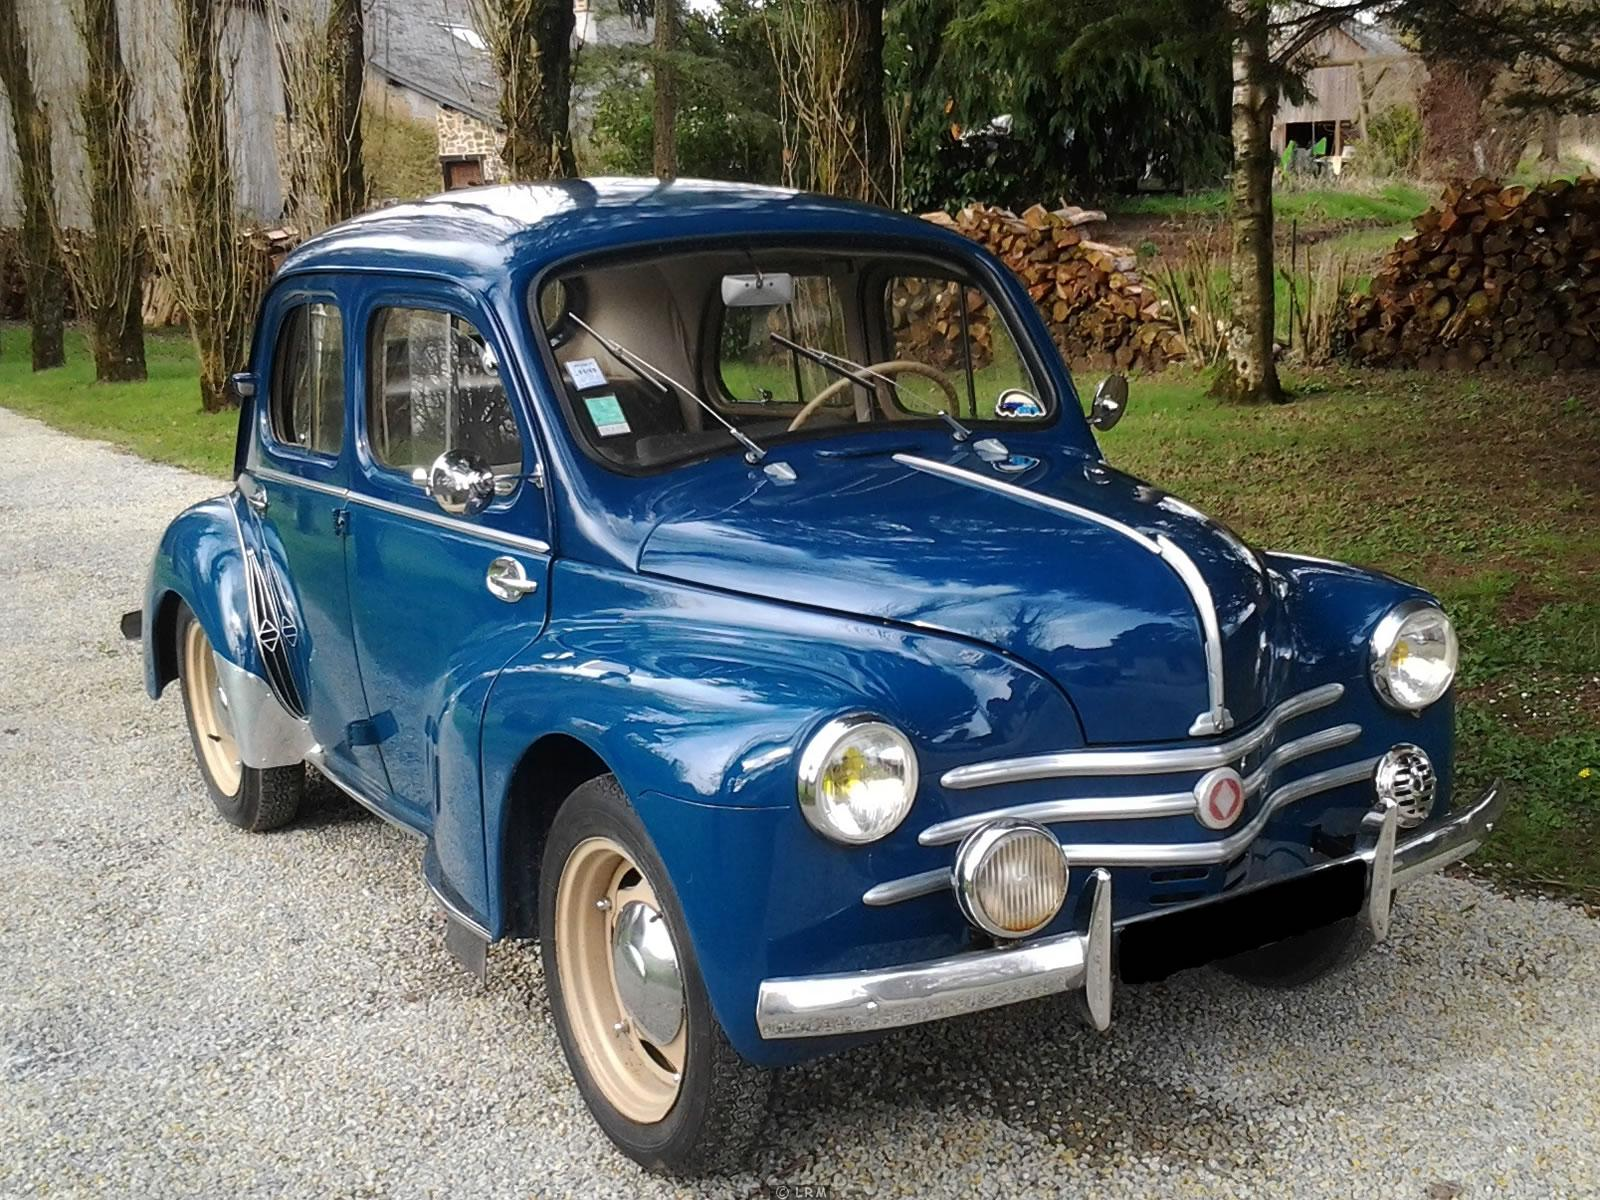 1951 renault 4cv - information and photos